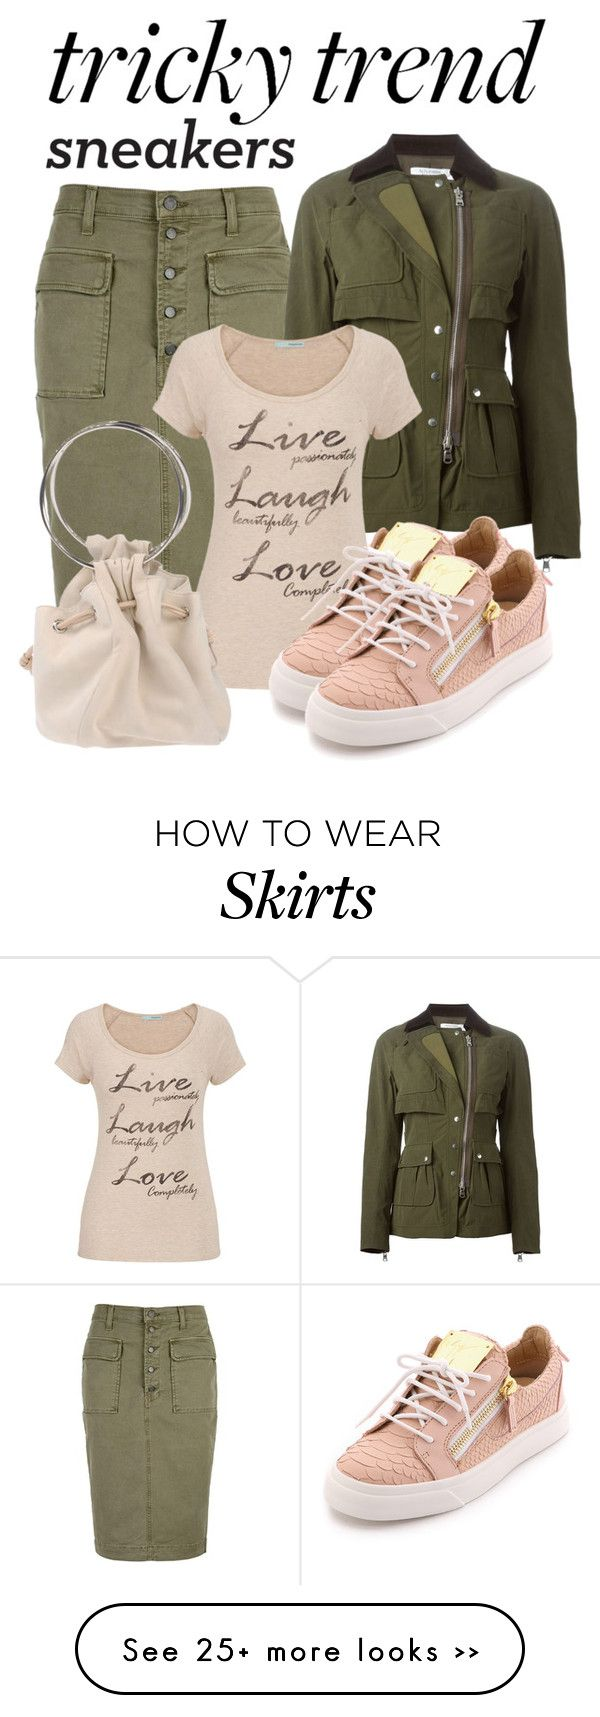 """Pencil Skirts & Sneakers"" by fantasiegirl on Polyvore featuring moda, J Brand, Altuzarra, maurices e Giuseppe Zanotti"